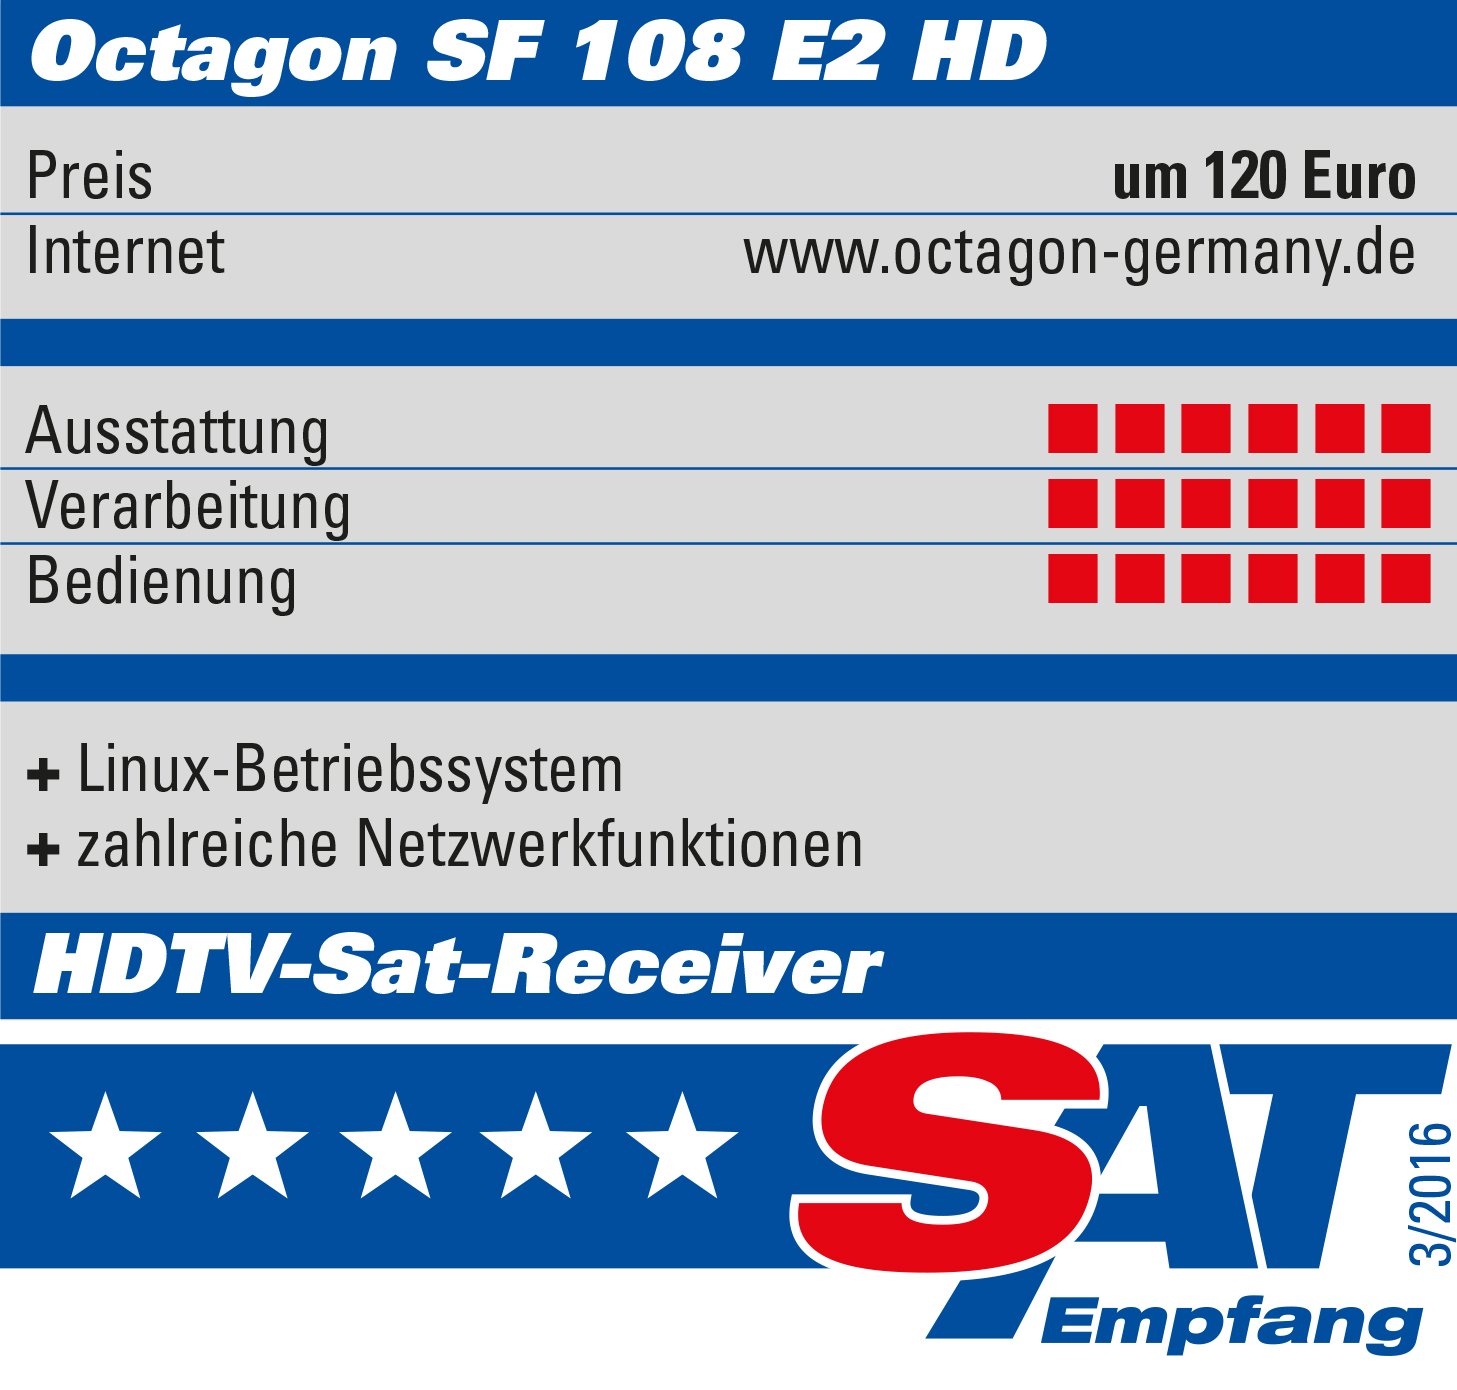 Octagonsf1085sternenote